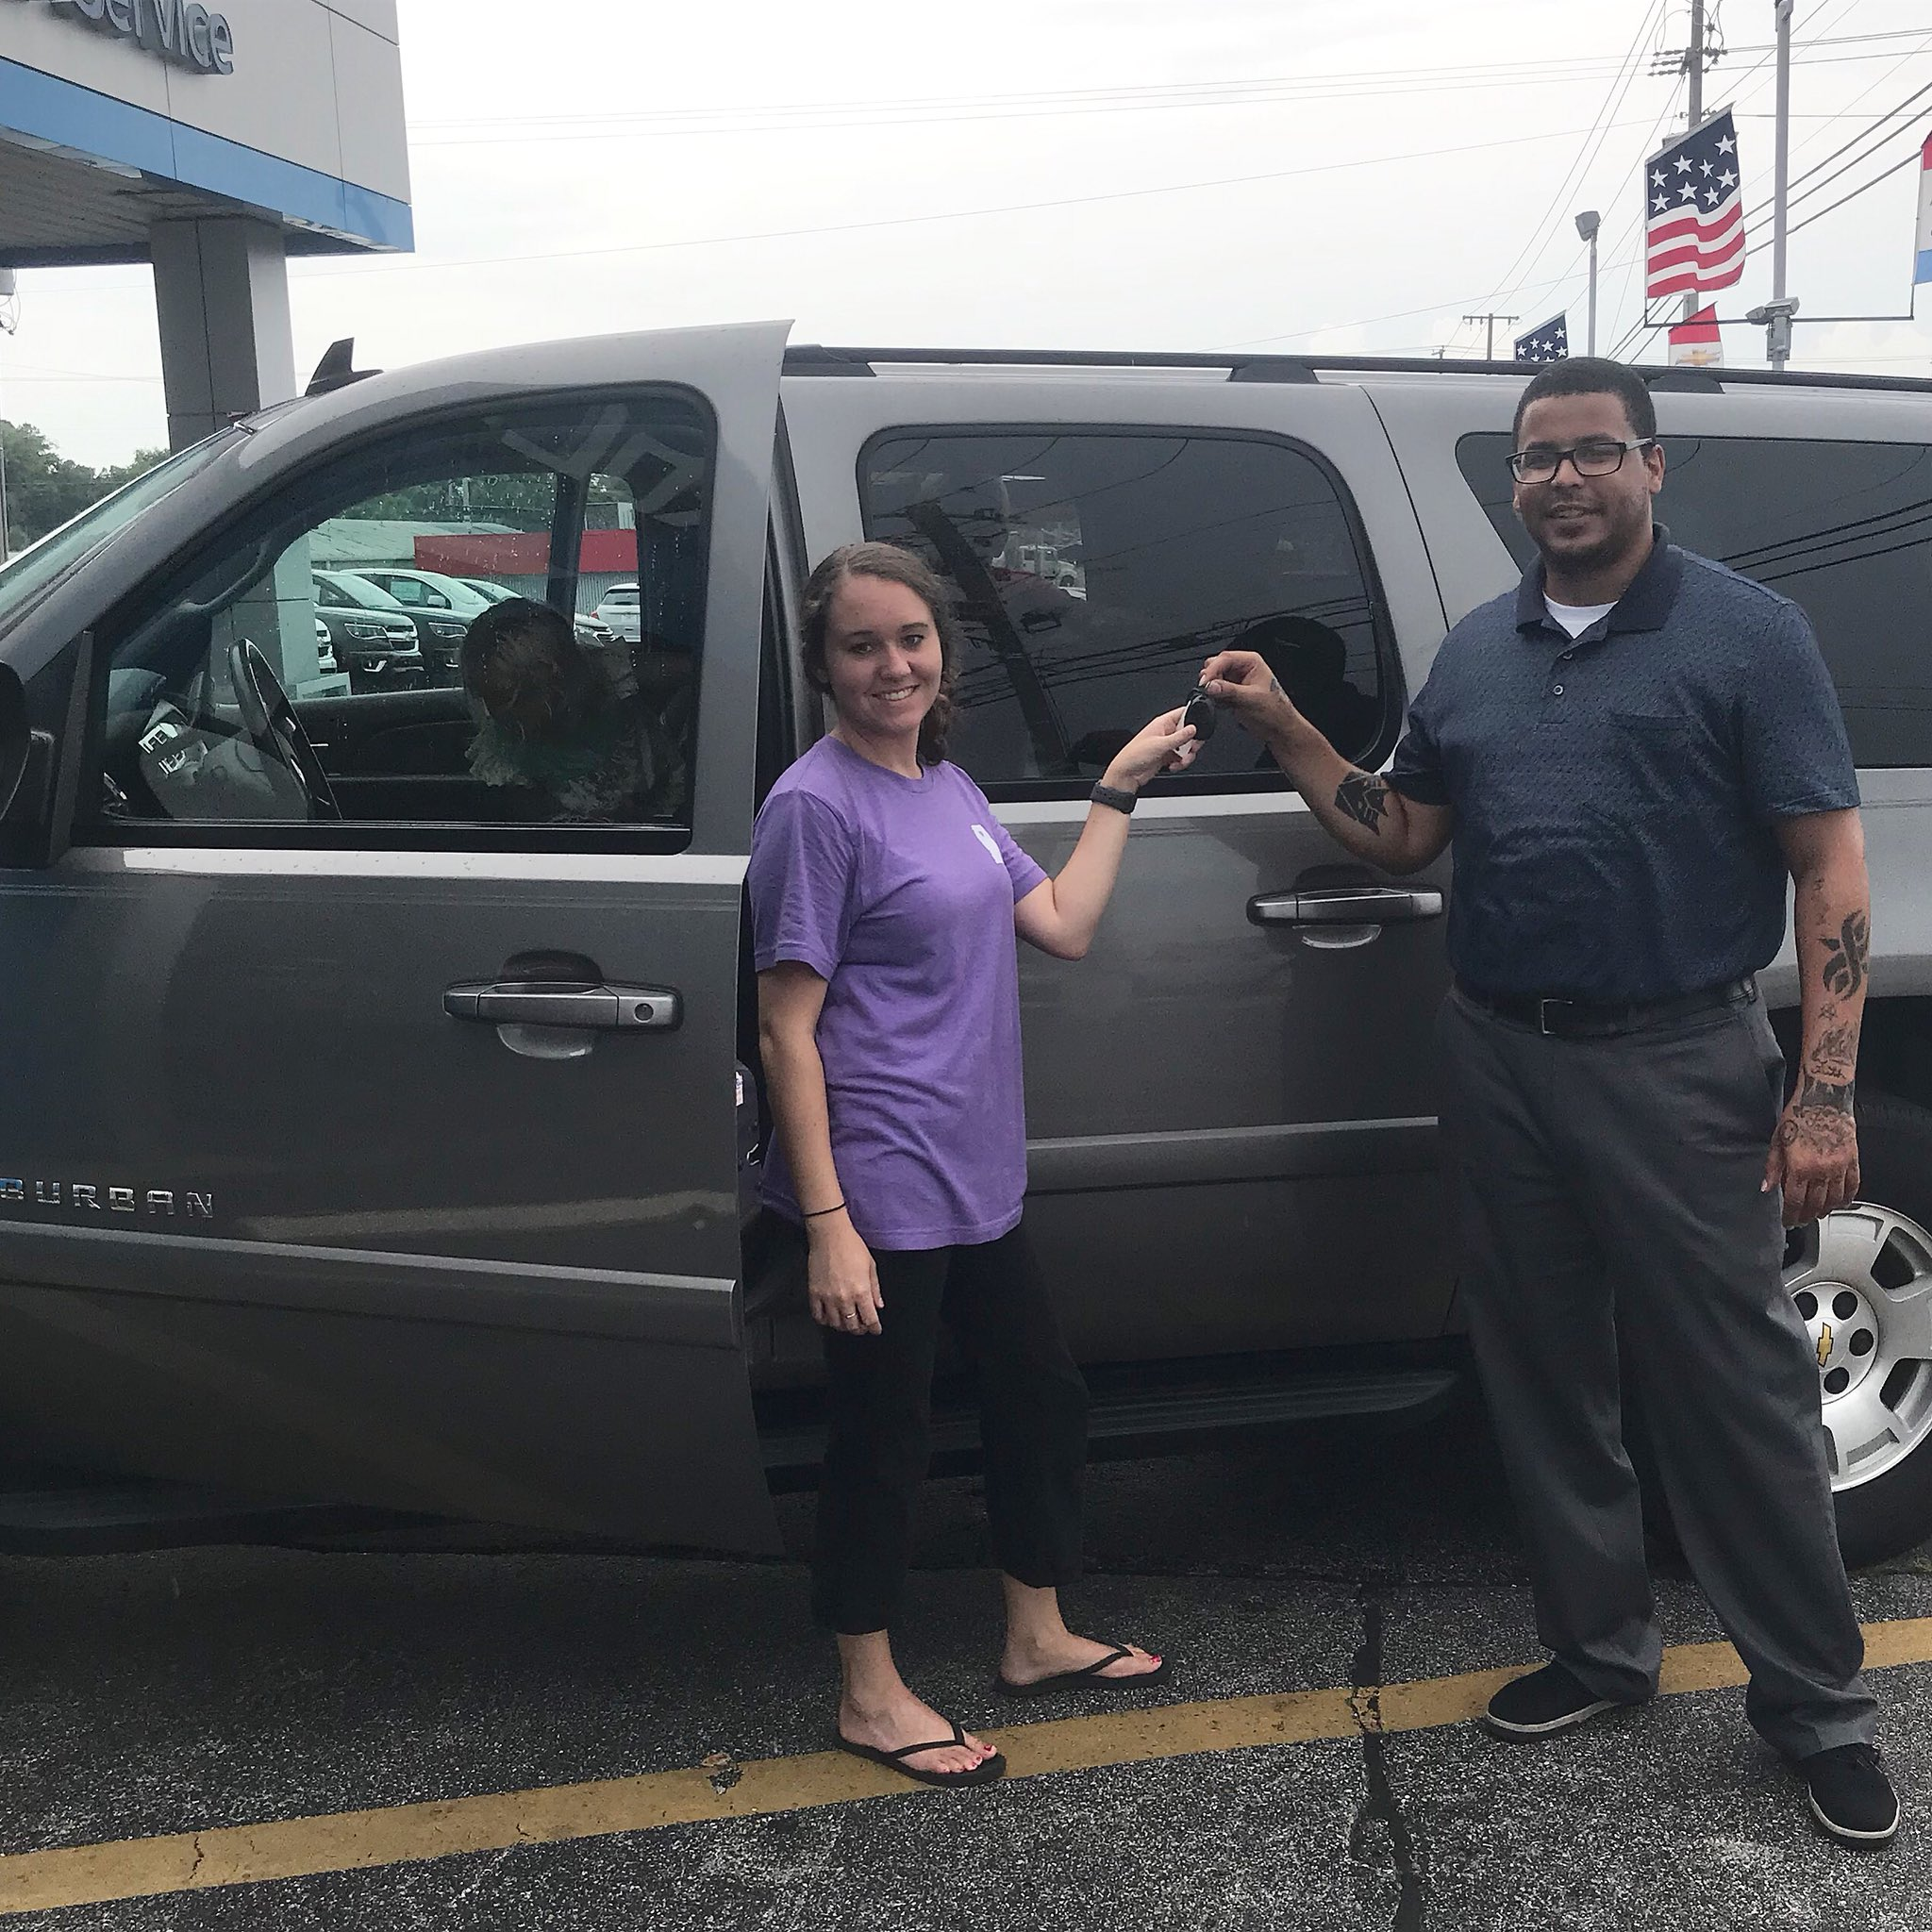 dwayne blackmon chev on twitter epic and sharp in every detail the chevy suburban is topoftheline so big congratulations to lauren deaton for sealing the perfect deal on this beauty welcome to twitter